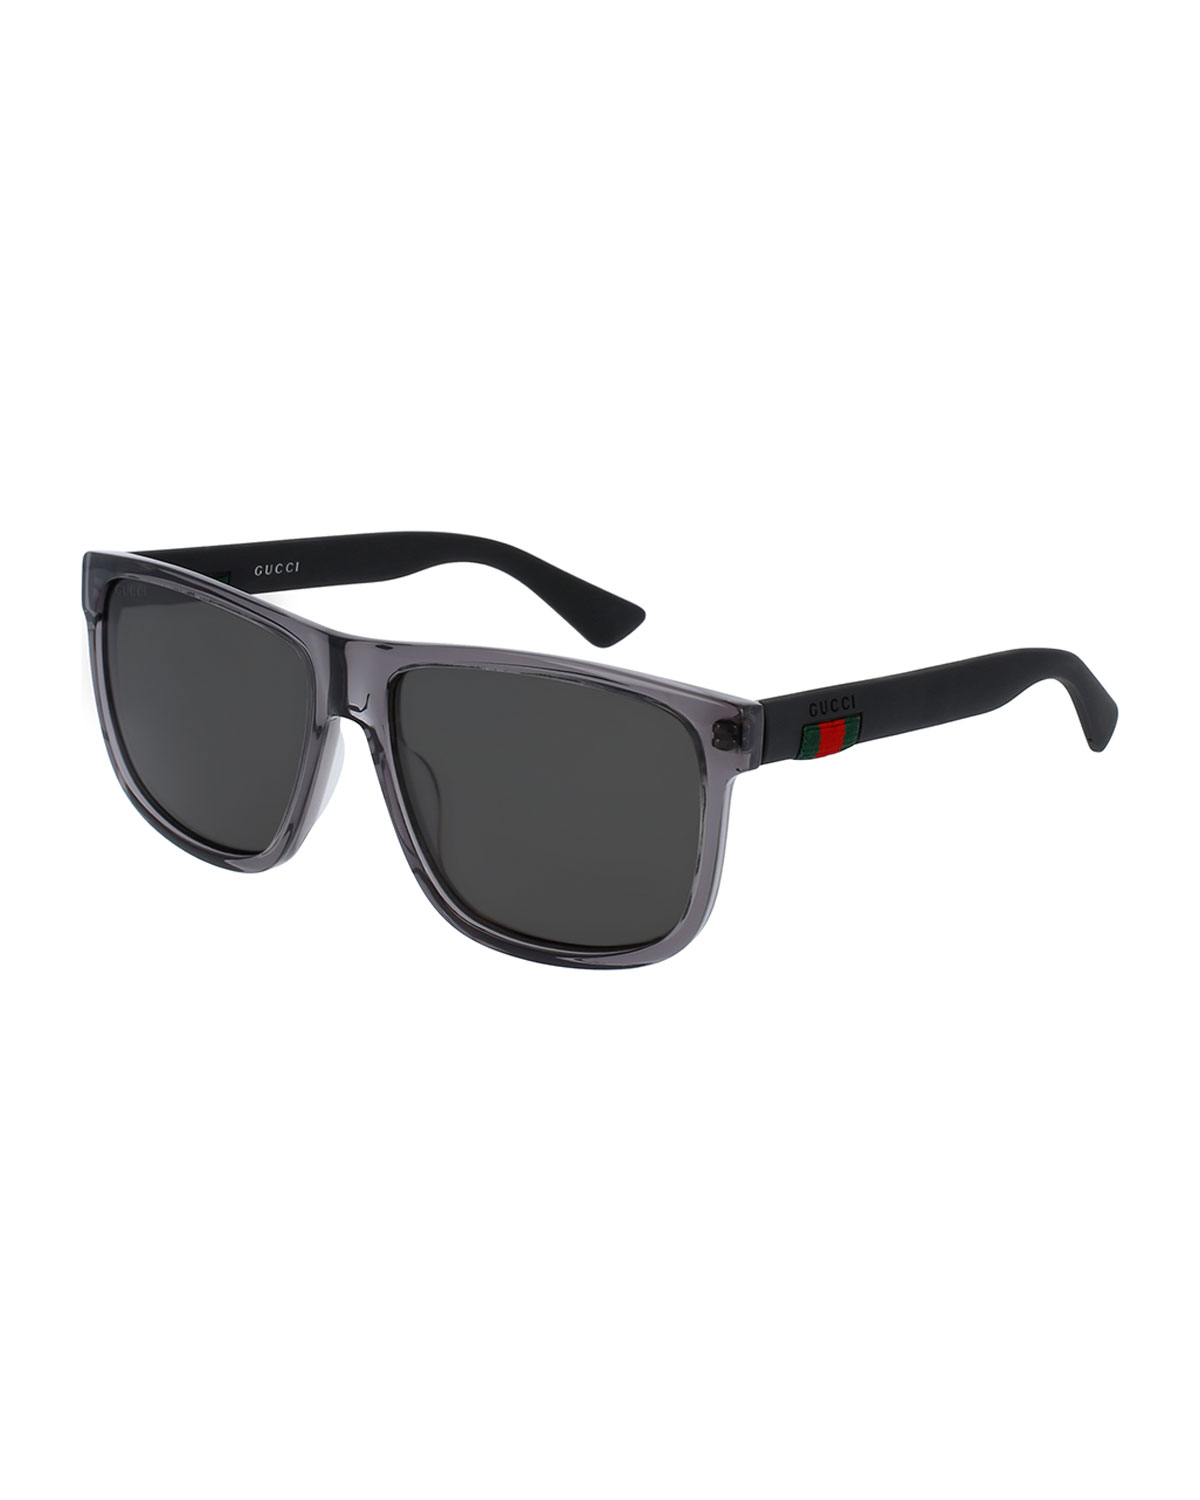 dd119bd3d8b Gucci Polarized Square Acetate Sunglasses